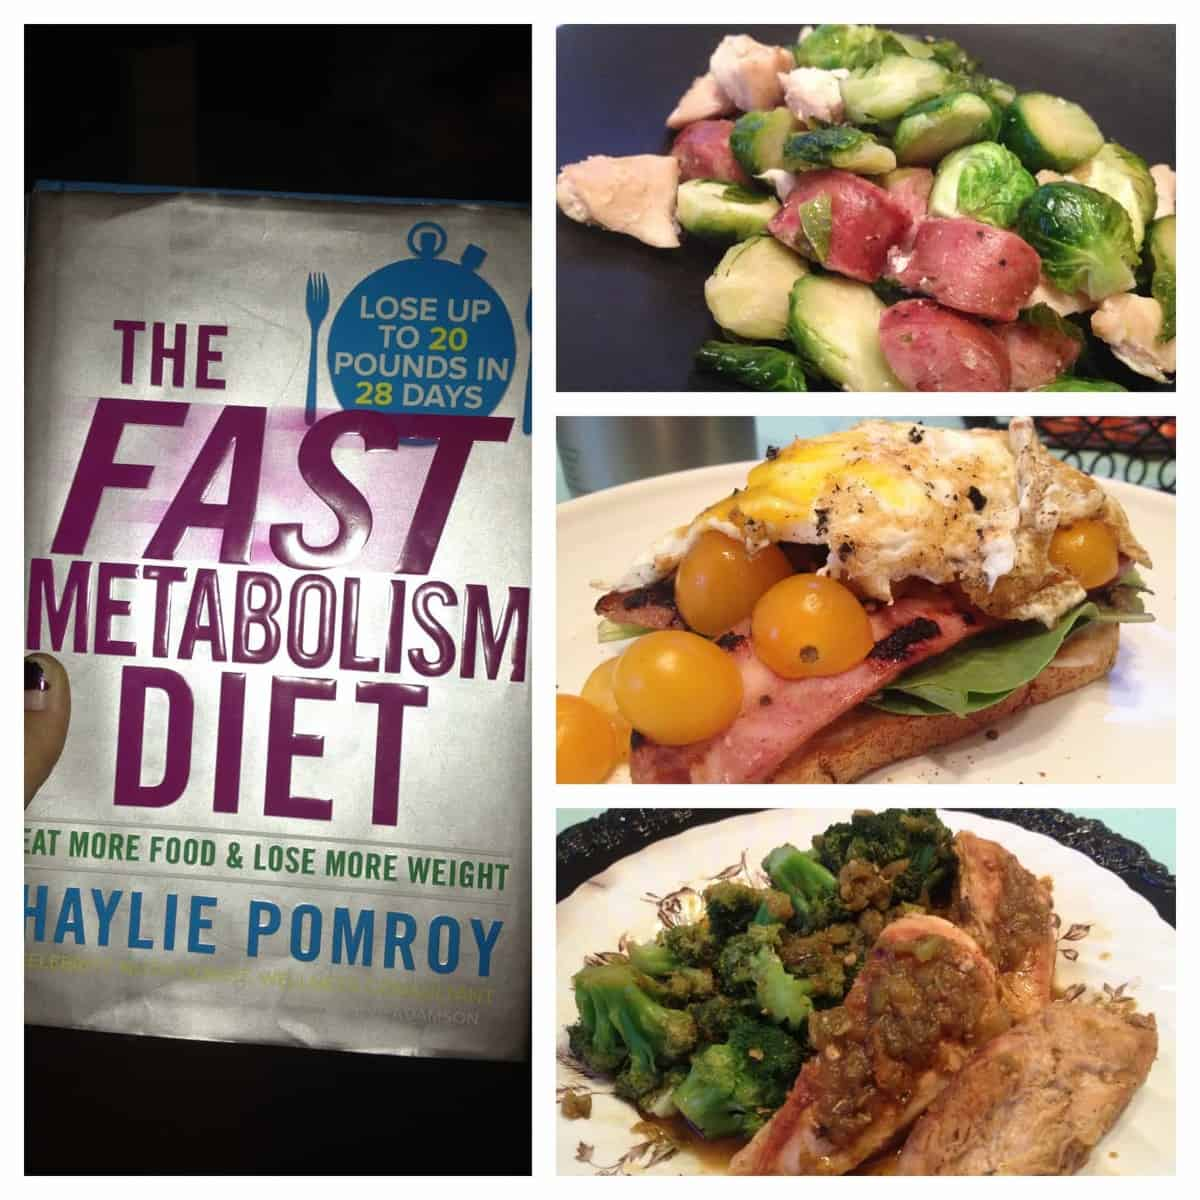 Fast Metabolism Diet while gluten-free